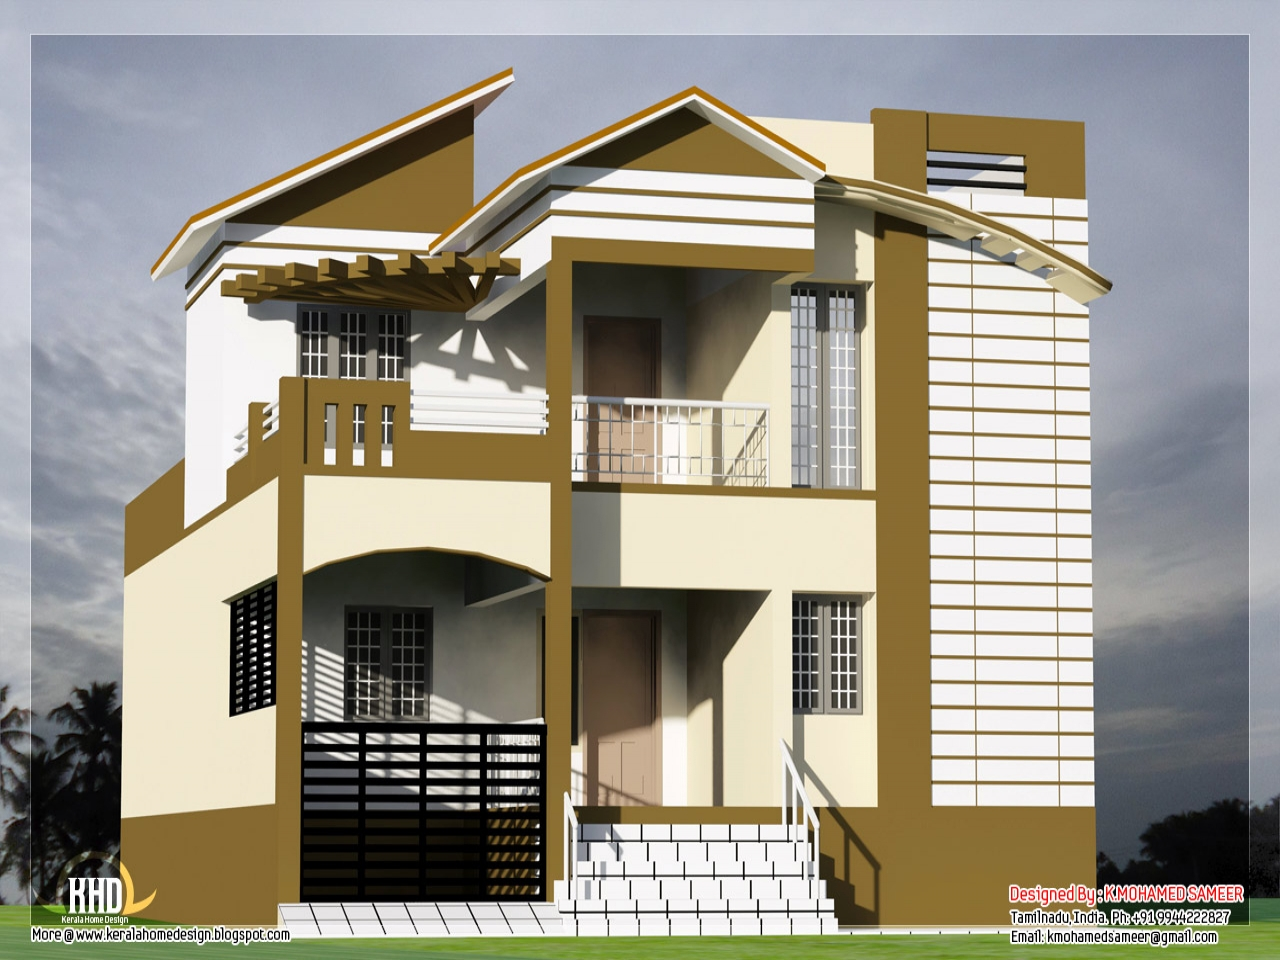 Best indian house designs south indian house designs for House designs indian style